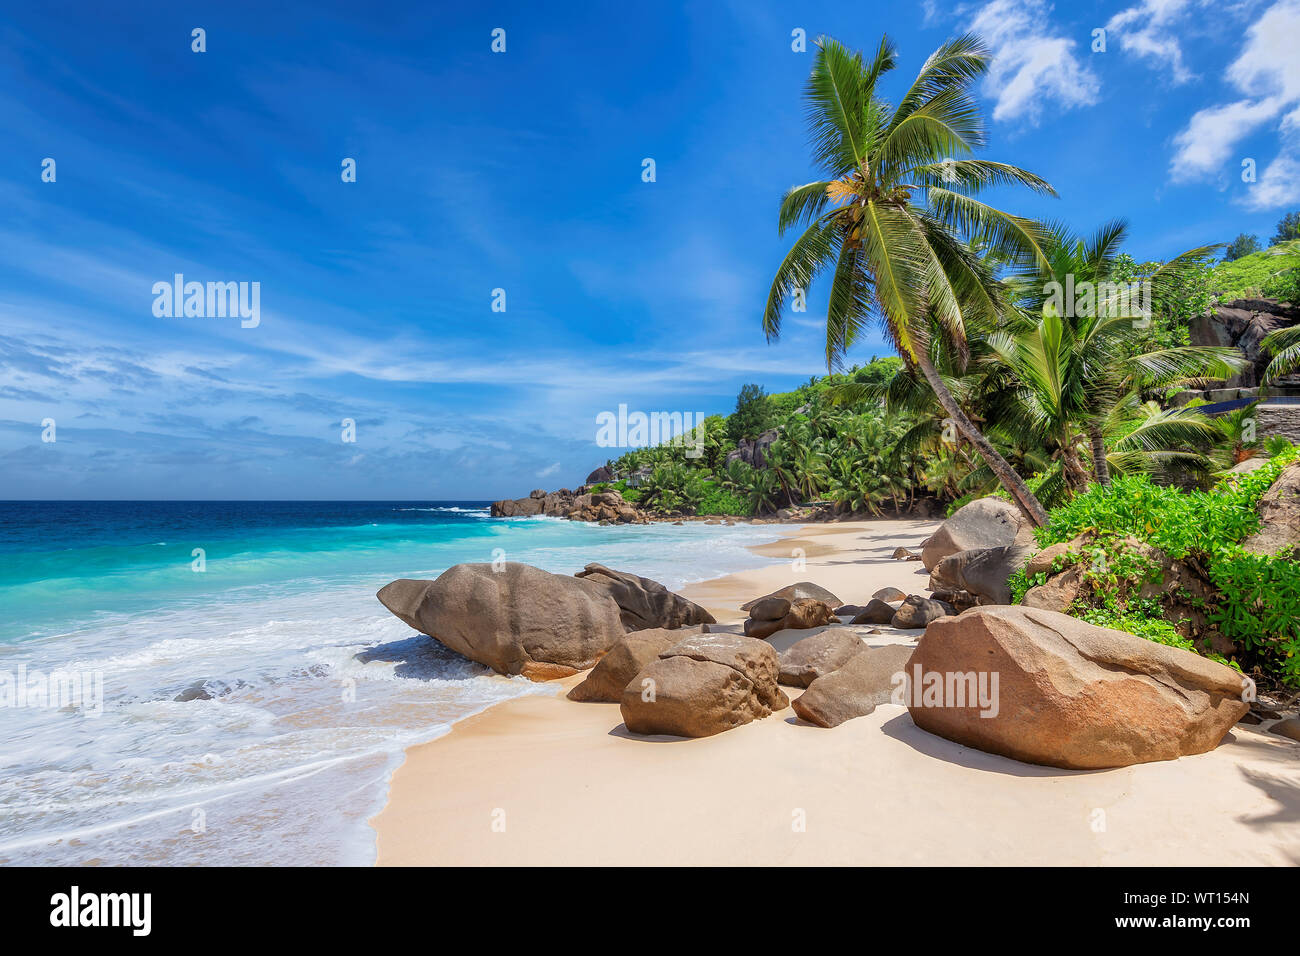 Exotic beach with white sand and tropical sea on Paradise island. Stock Photo